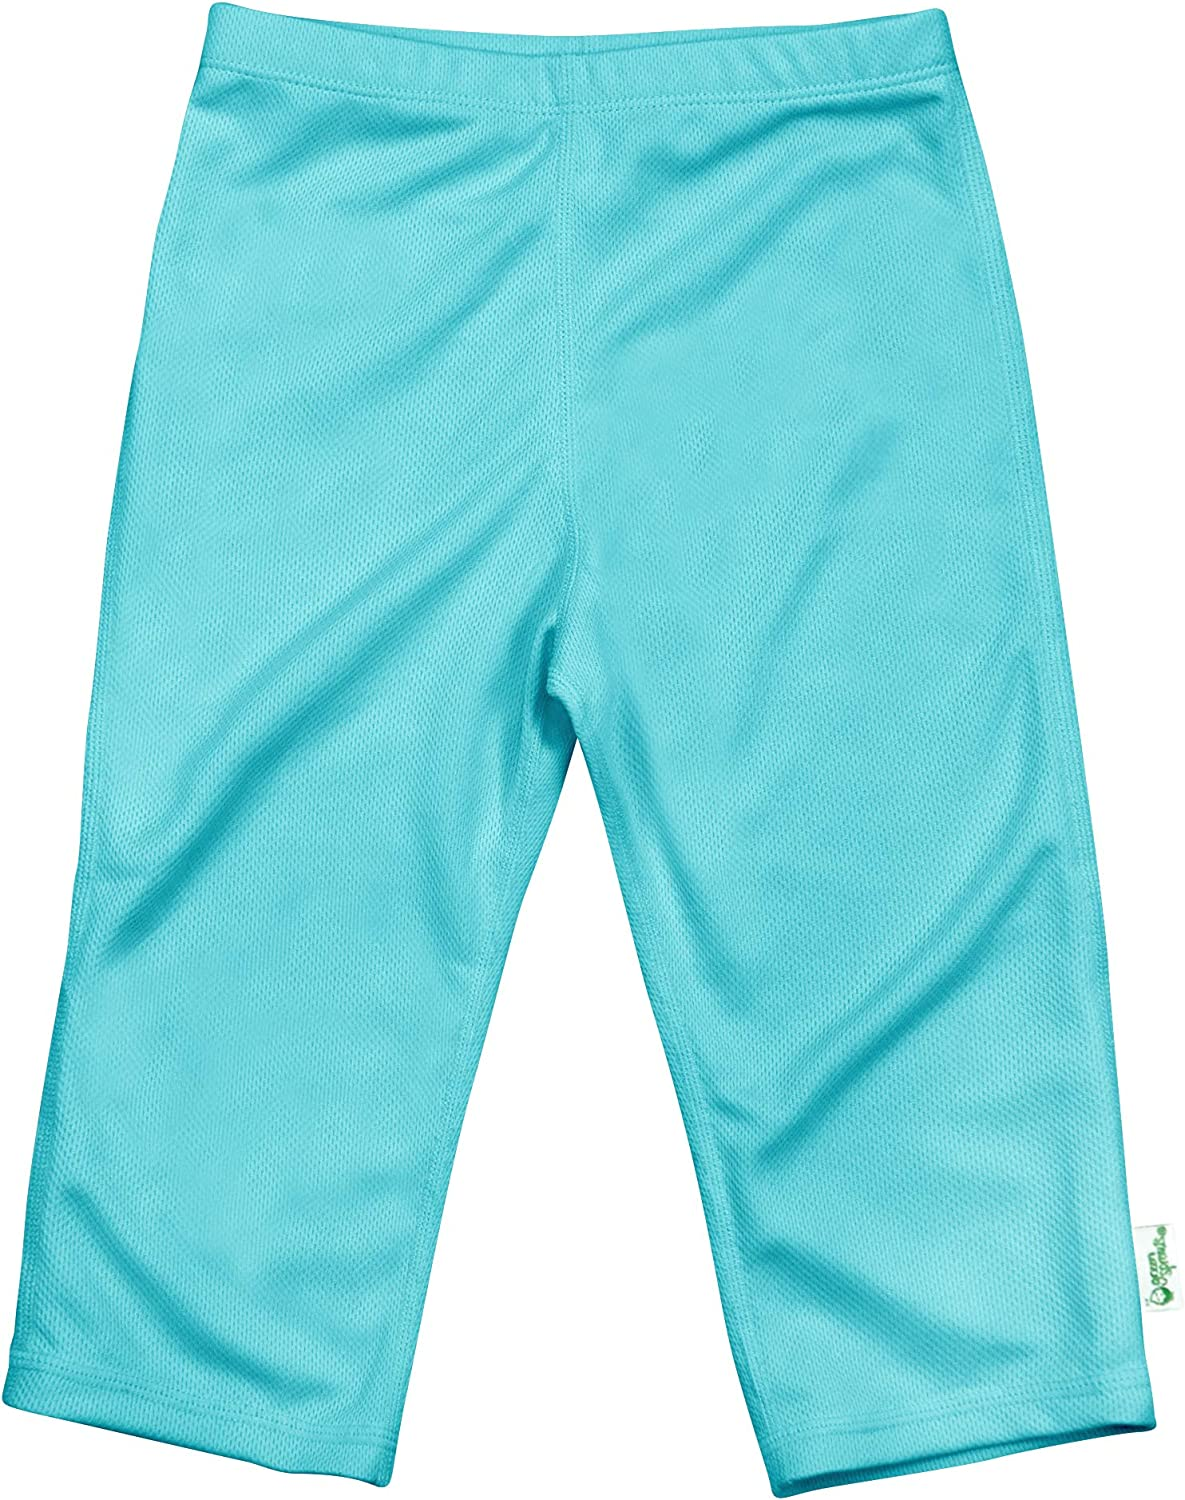 UPF 50 Sun Protection i play Full-Coverage by green sprouts Baby Breathable Pants